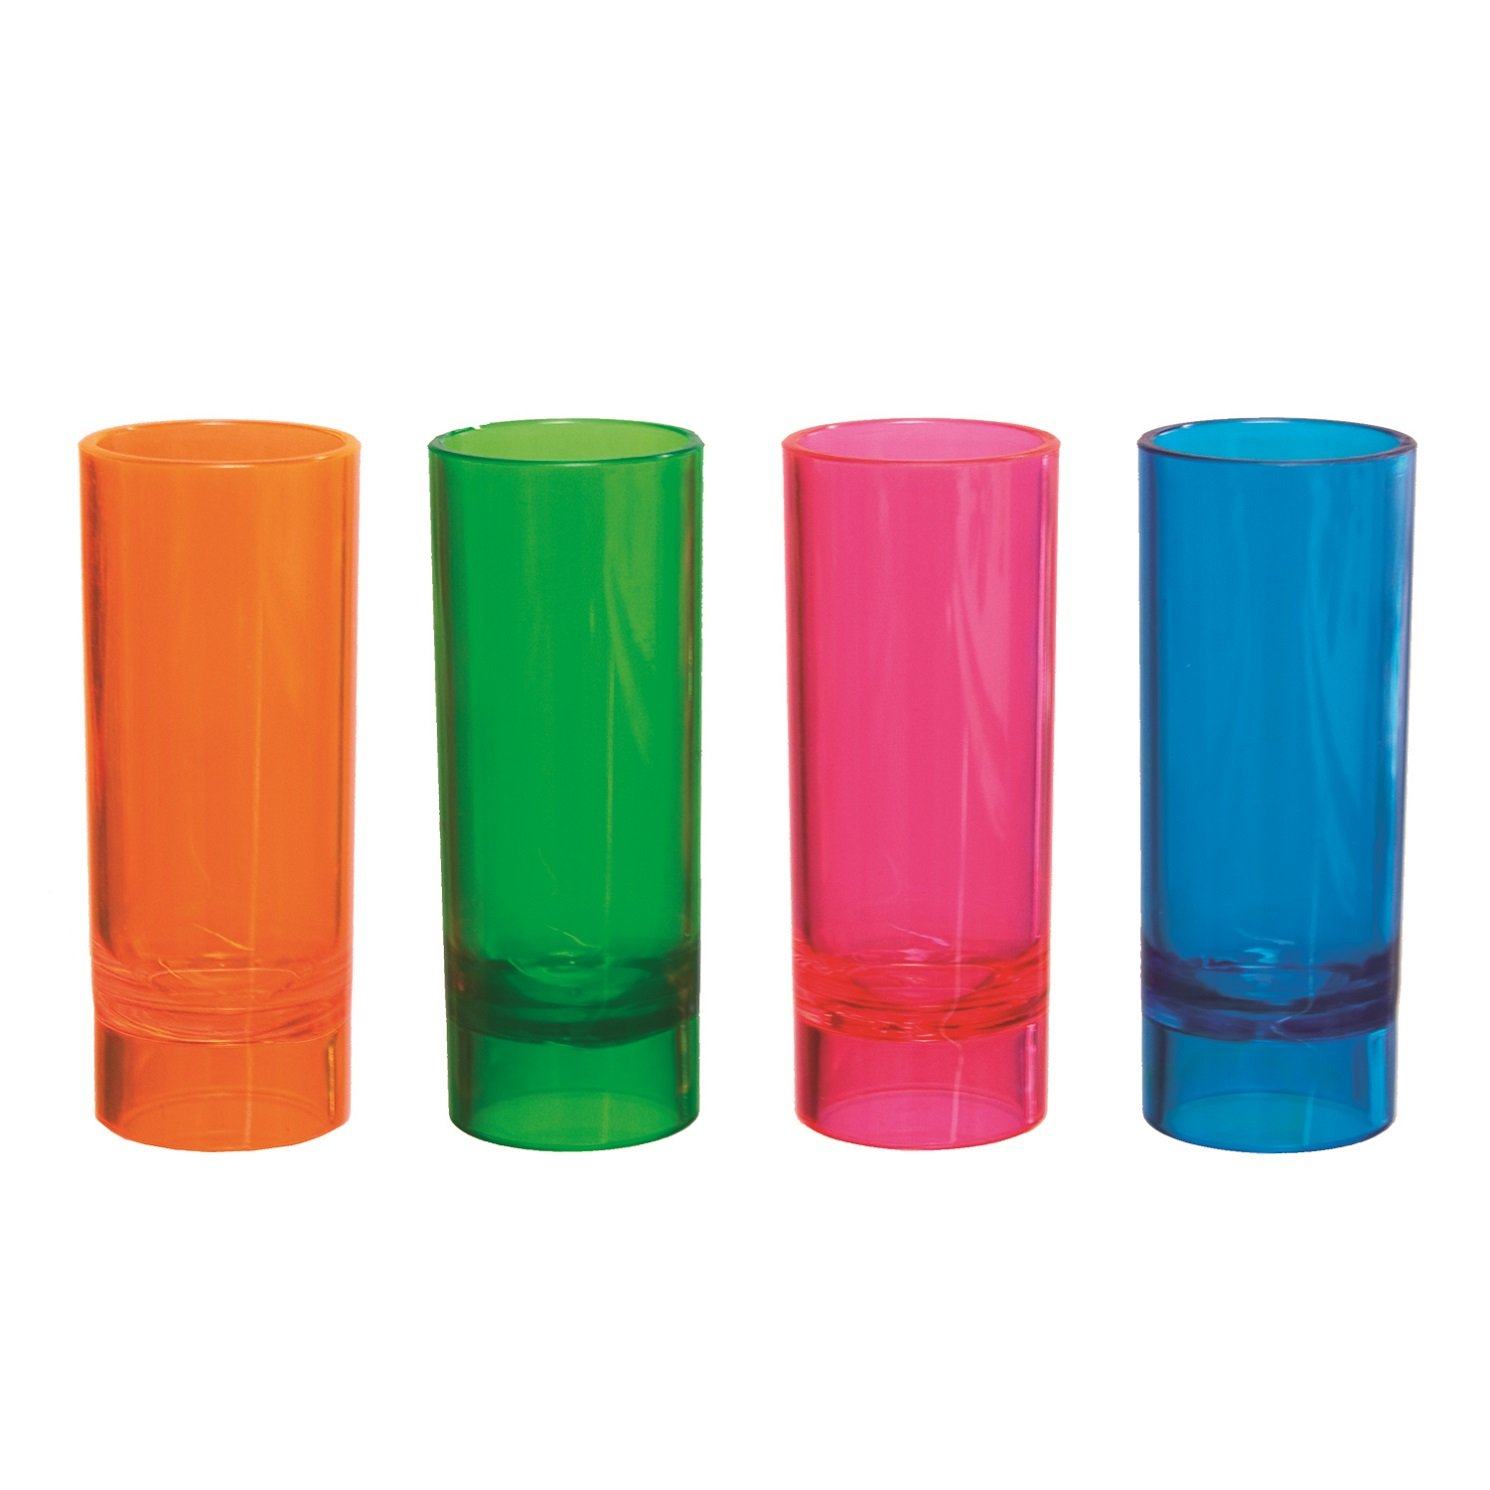 Party Essentials 10-Count Hard Plastic 2-Ounce Shot/Shooter Glasses, Assorted Neon